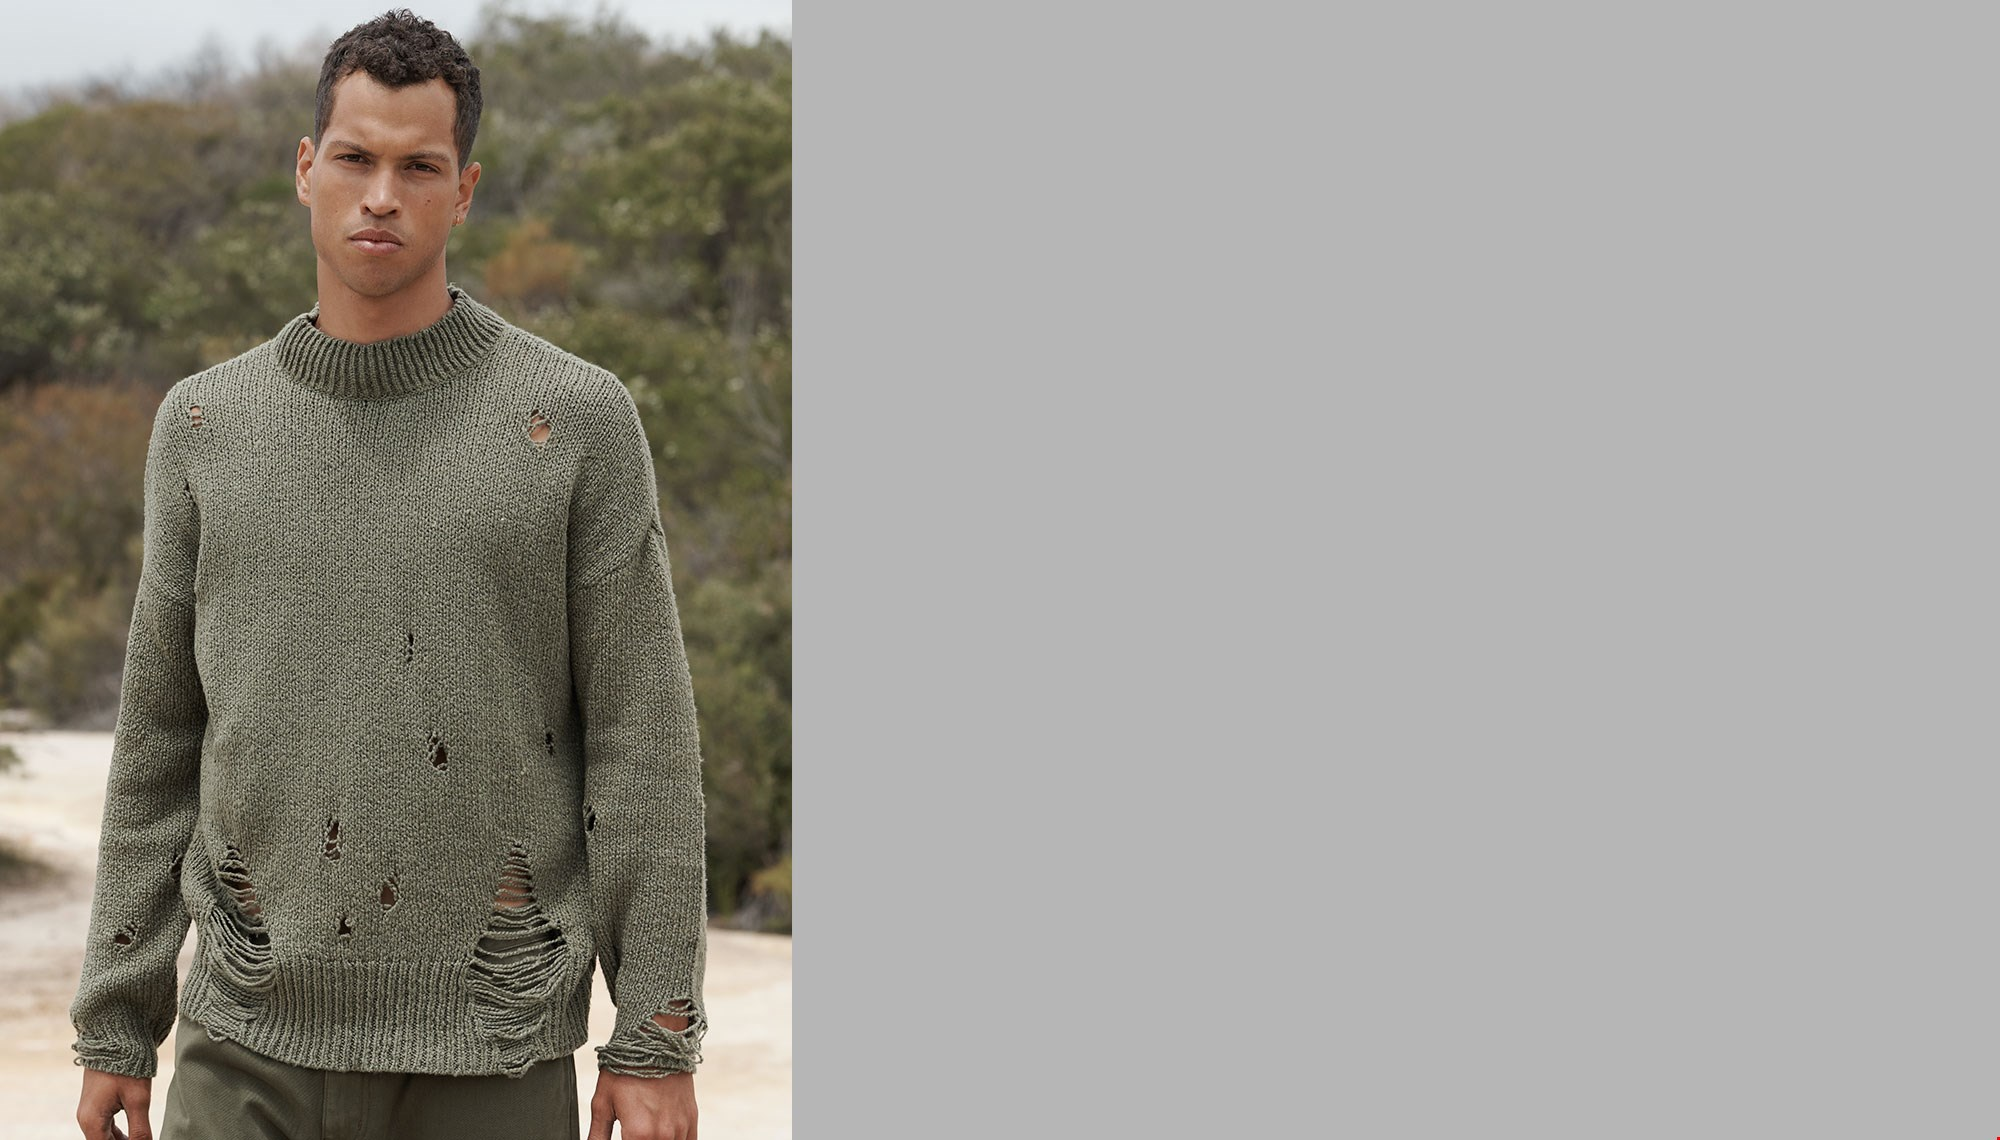 KHAKI DESTROYED FISHERMANS KNIT SWEATER